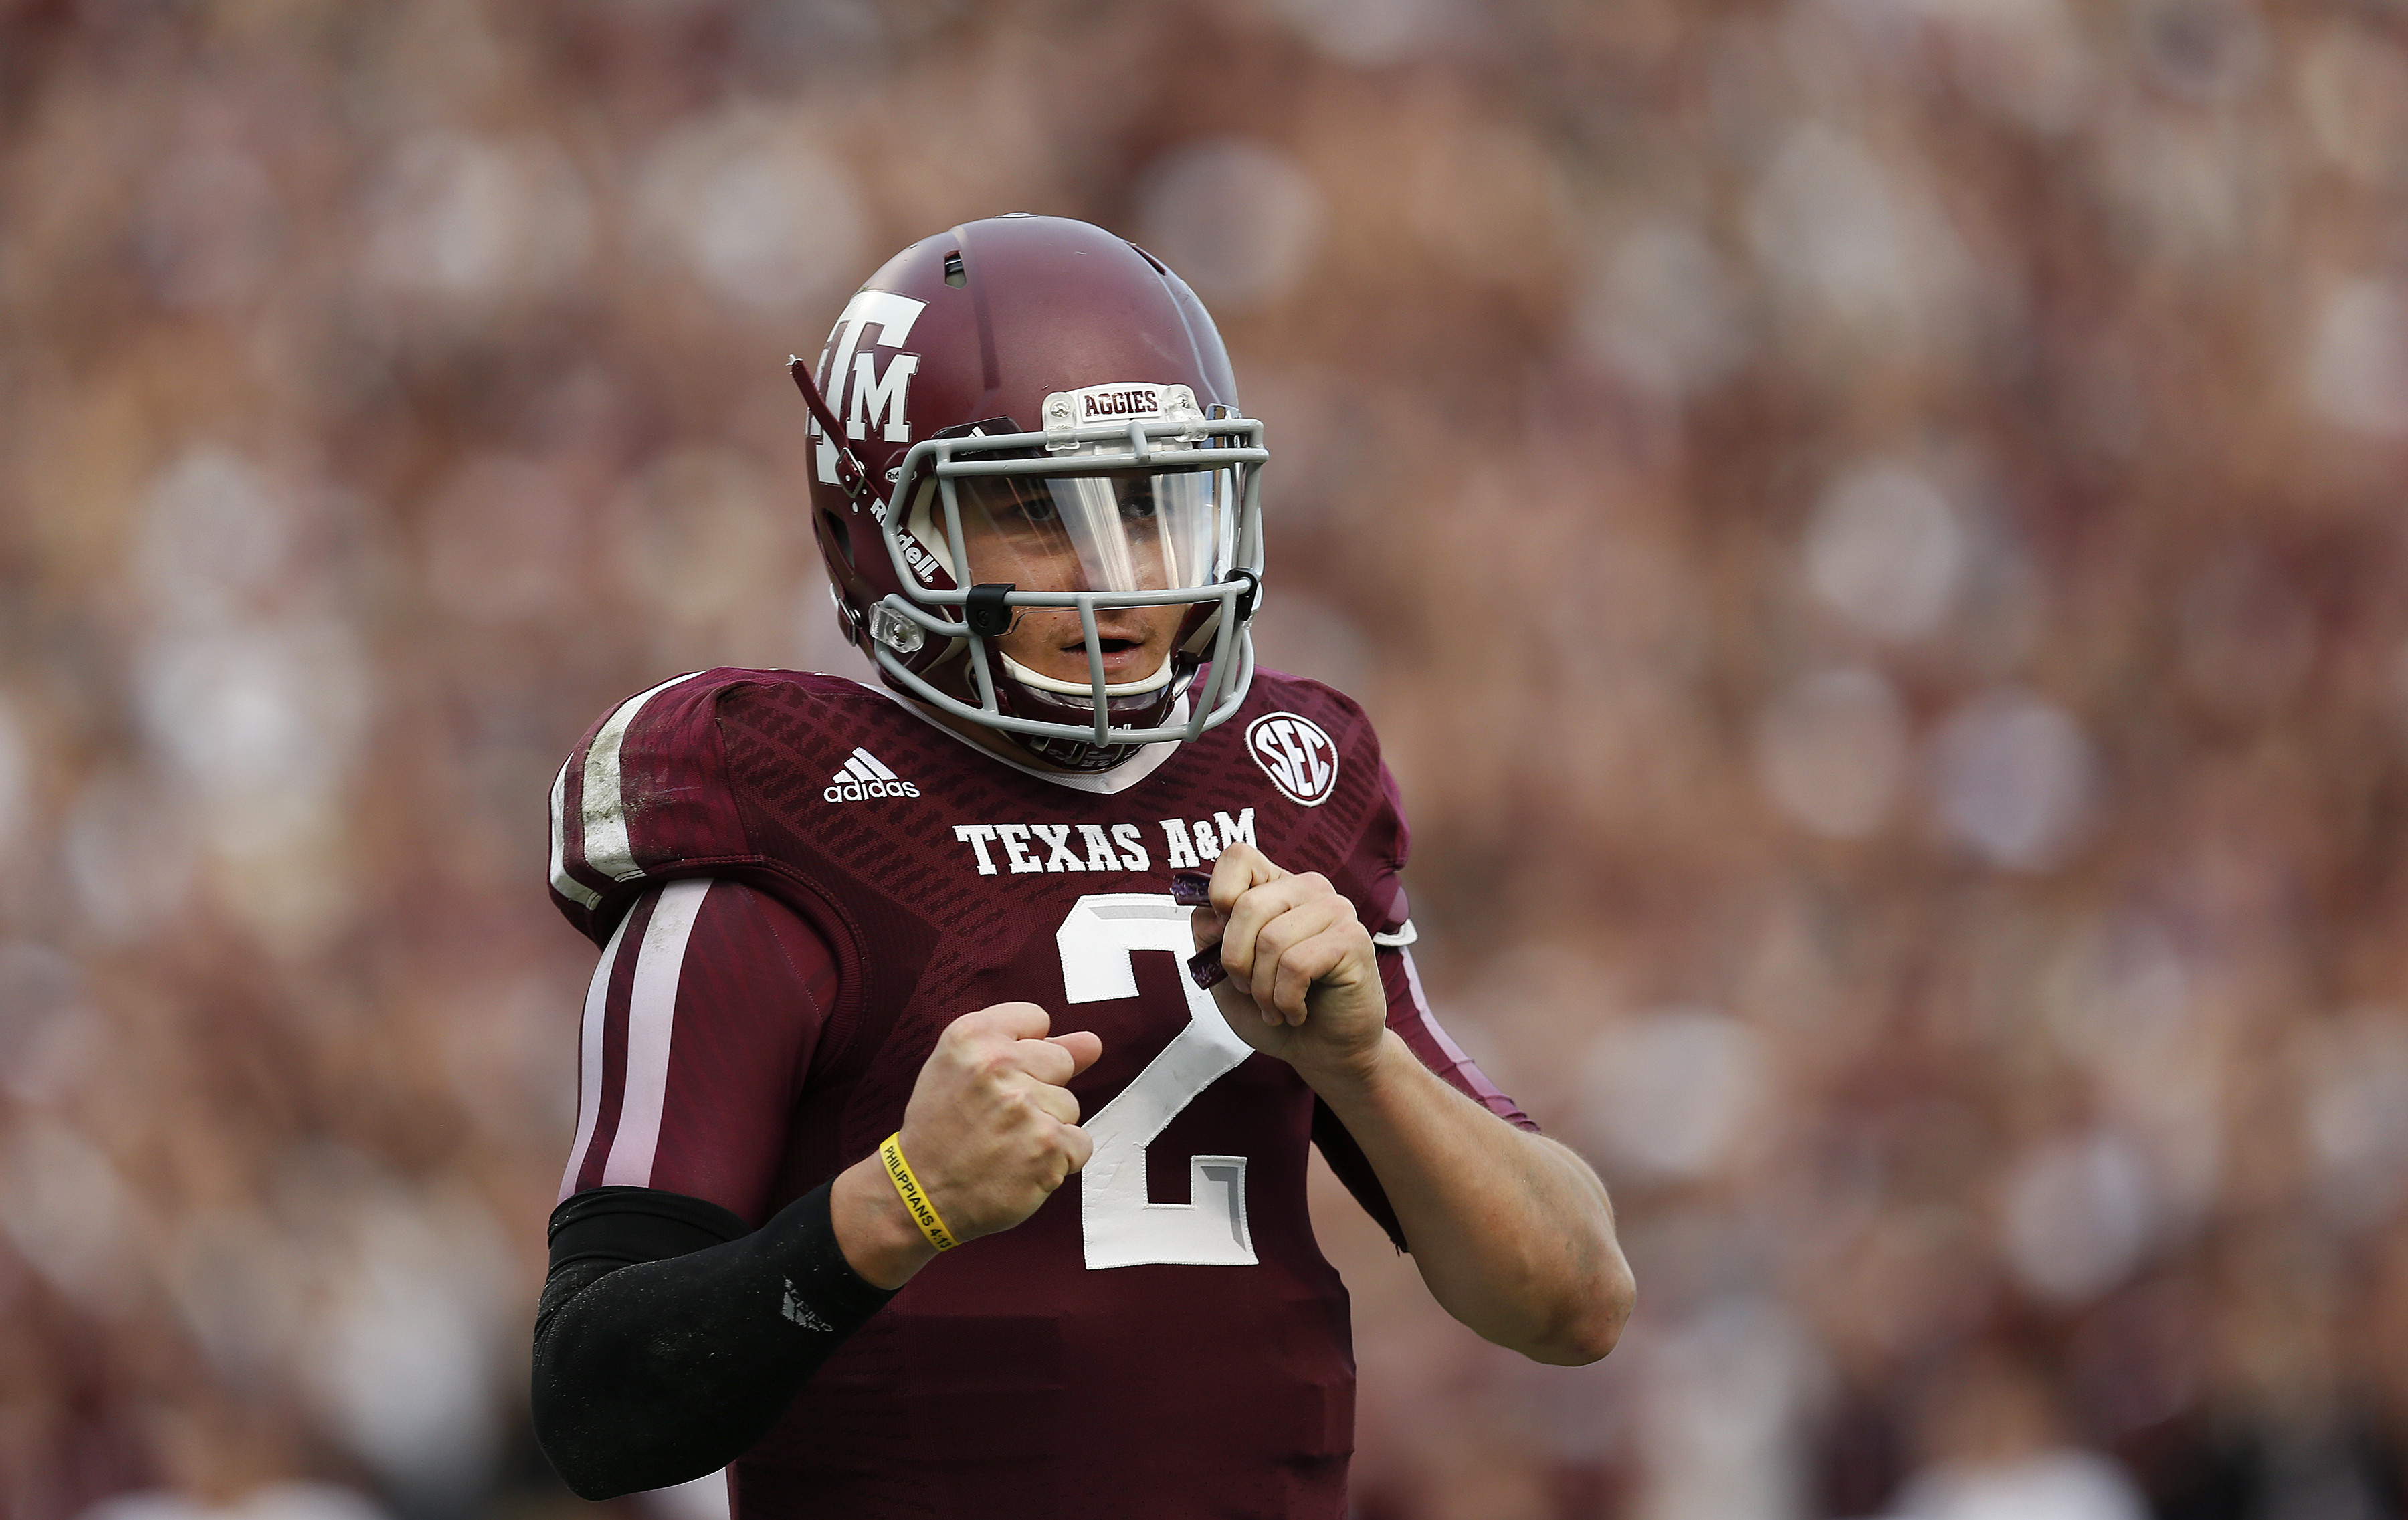 Texas A&M University Aggies quarterback Johnny Manziel (2) celebrates after throwing a touchdown pass during an NCAA college football game against the Mississippi State University Bulldogs at Kyle Field on Saturday November 9, 2013 in College Station, Texas. (AP Photo/Aaron M. Sprecher)